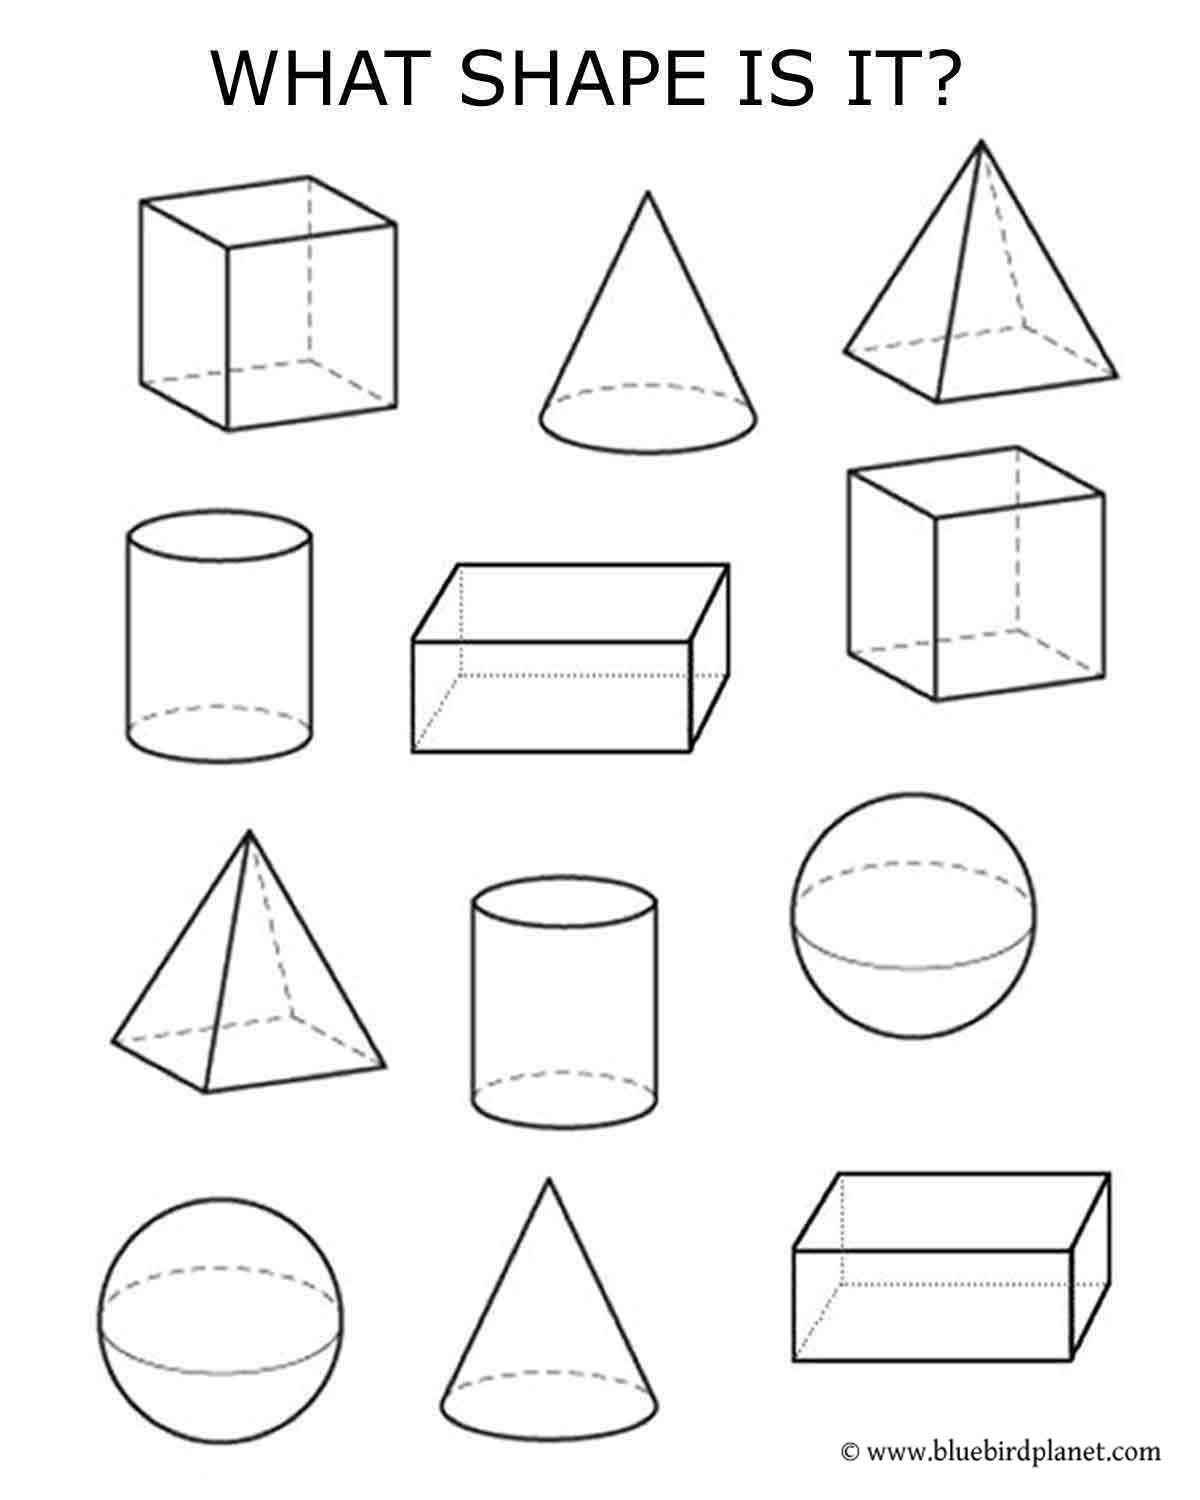 Polygon Worksheets 4th Grade Free Printable Worksheets for Preschool Kindergarten 1st